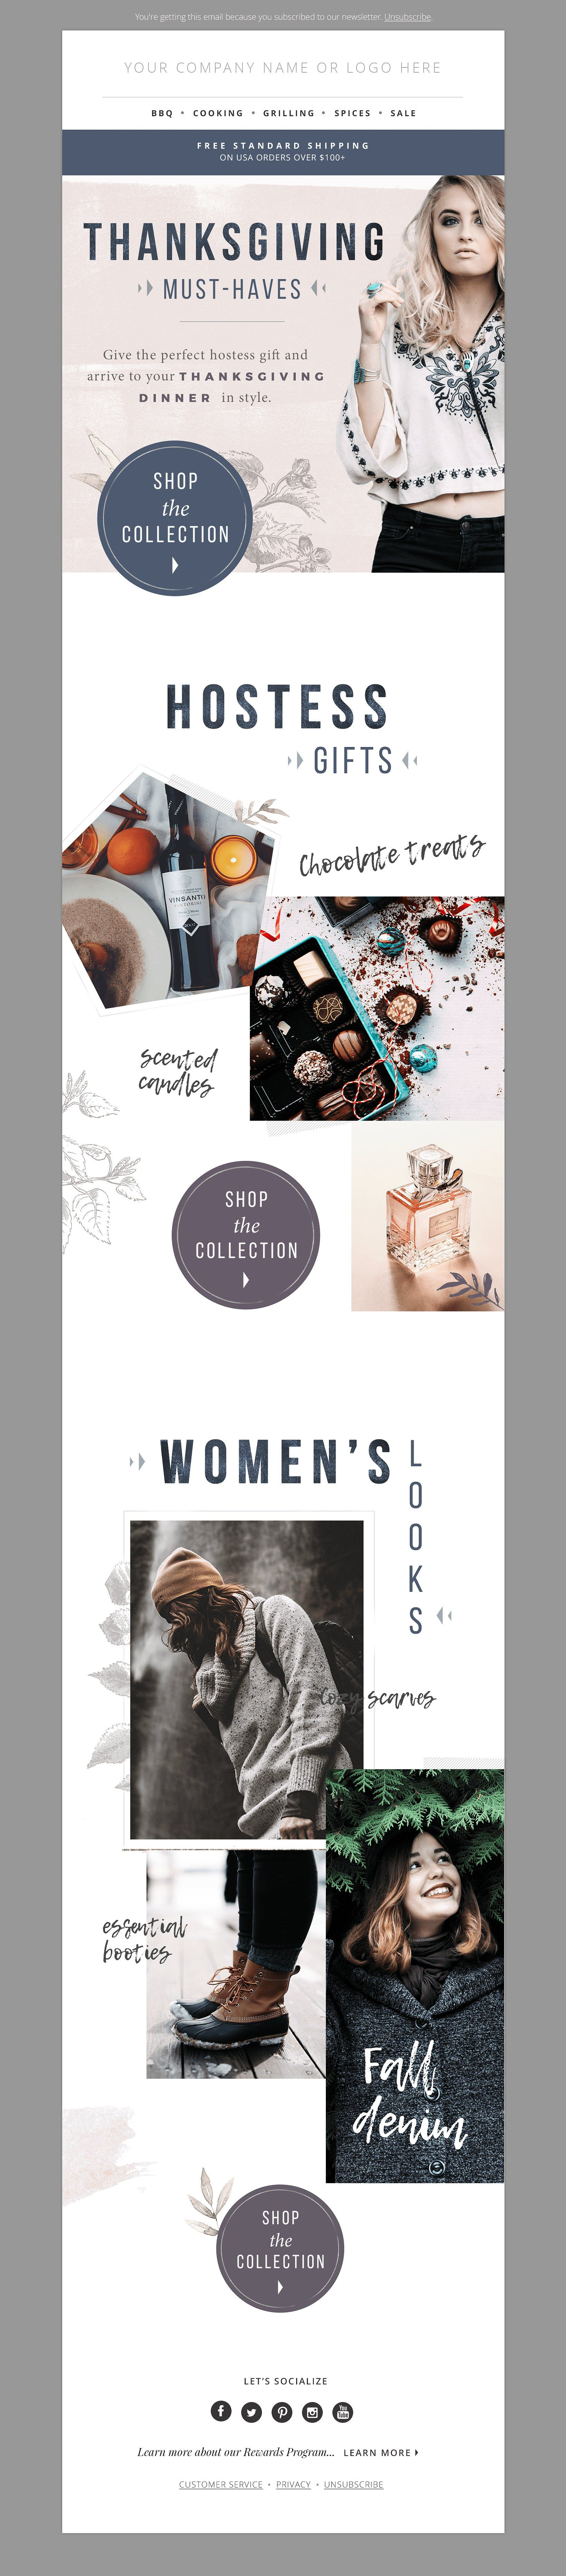 Gift Guide E-mail Template PSD by JannaLynnCreative on ...